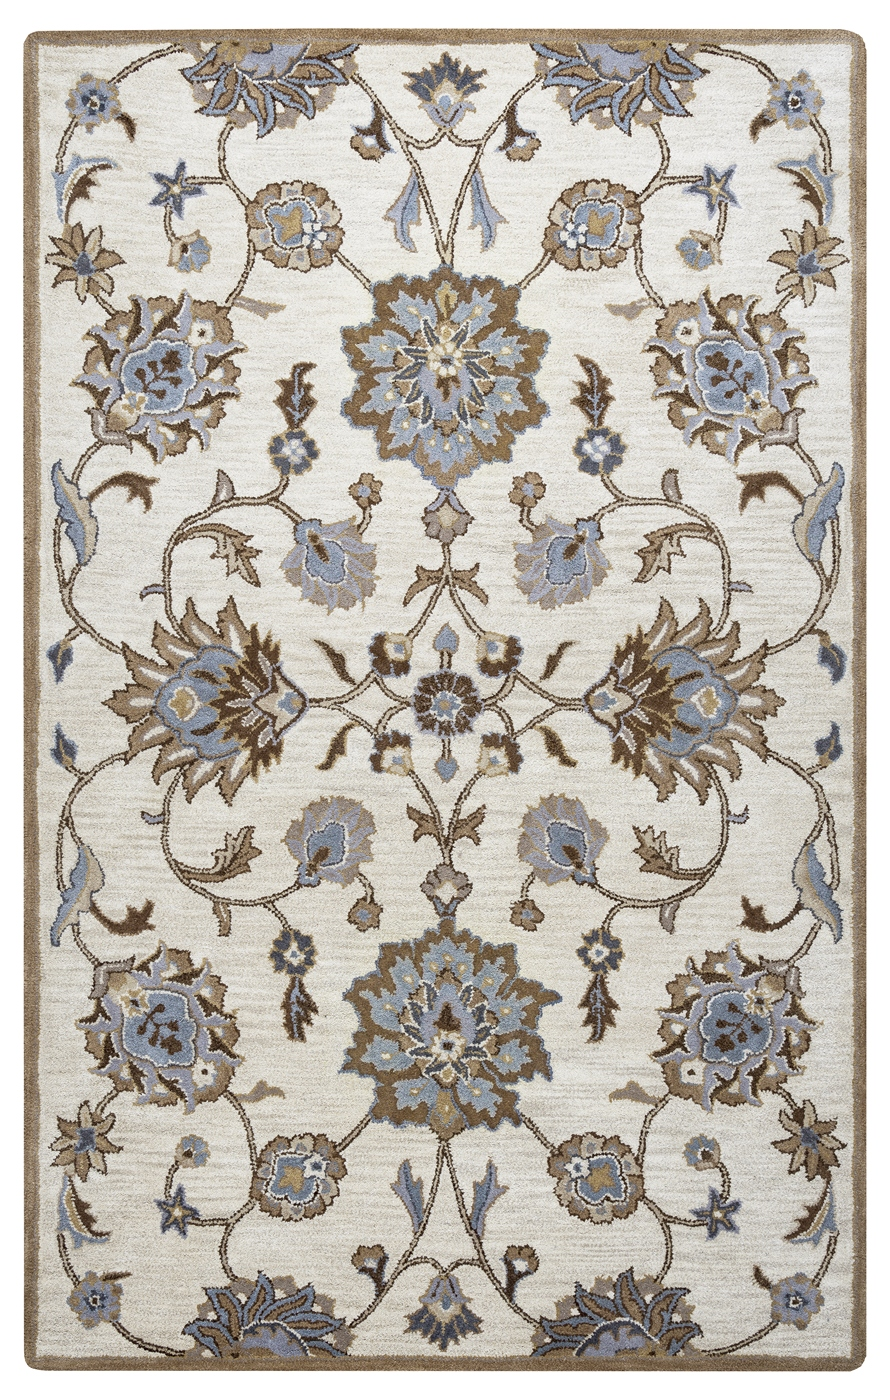 Valintino Ornate Vine Mums Wool Area Rug In Taupe Blue